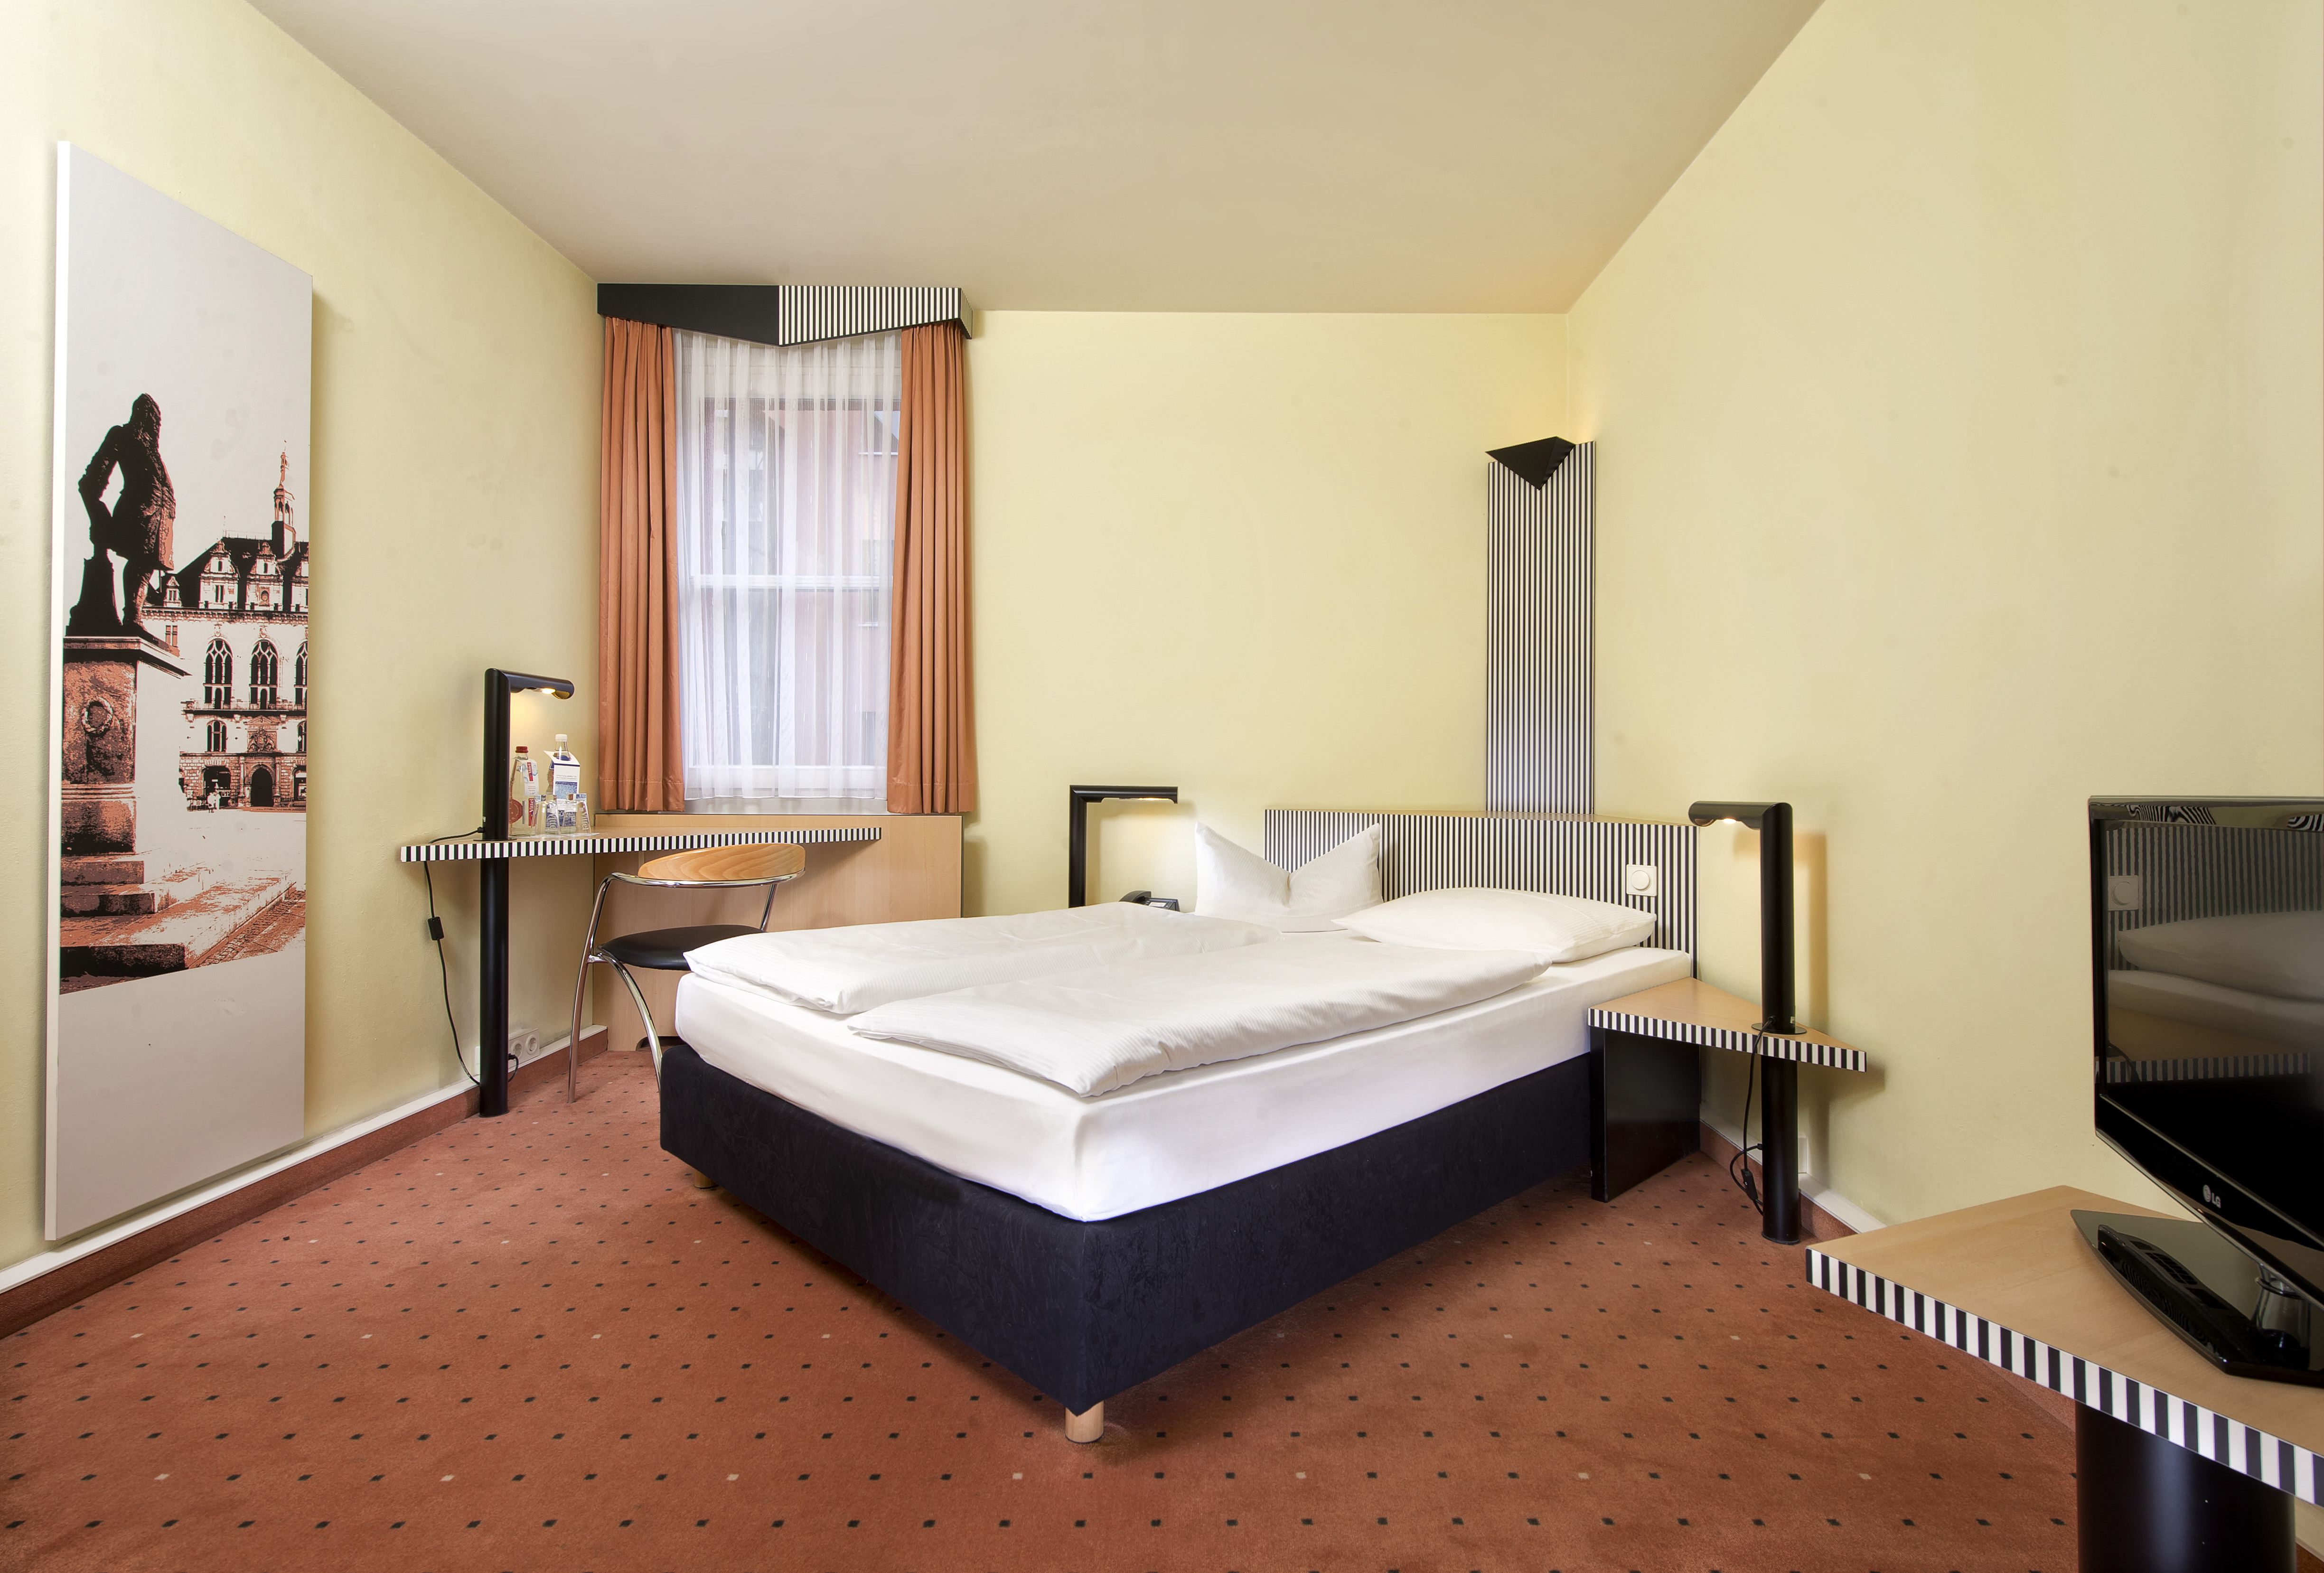 Business travellers! Click here - what do you think of hotel room designs?